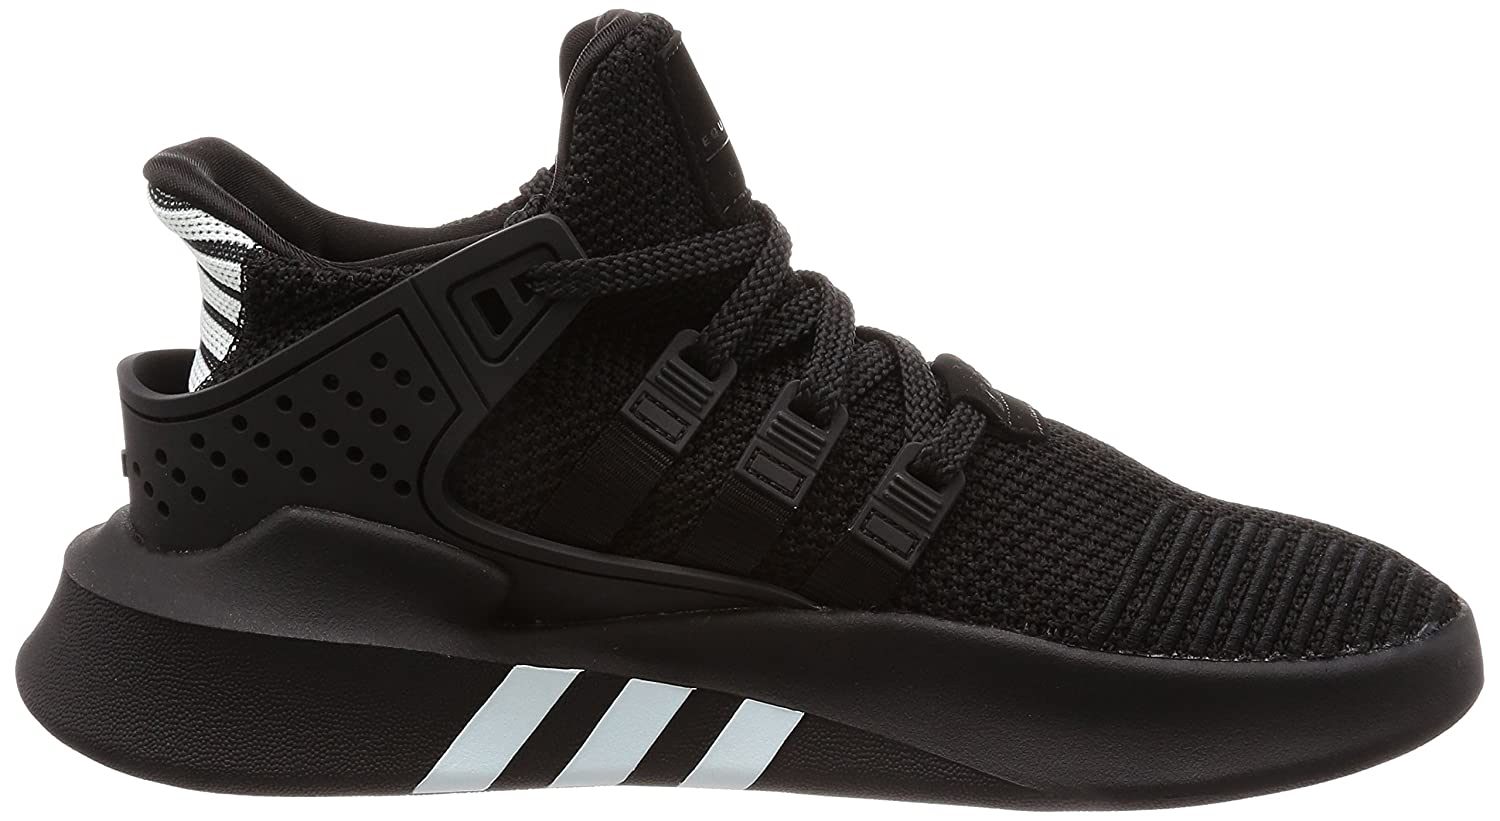 size 40 fde93 1c84a adidas Originals Mens EQT Bask Adv CblackCblackBlutin Sneakers - 7  UKIndia (40.67 EU)(CQ2991) Buy Online at Low Prices in India - Amazon.in